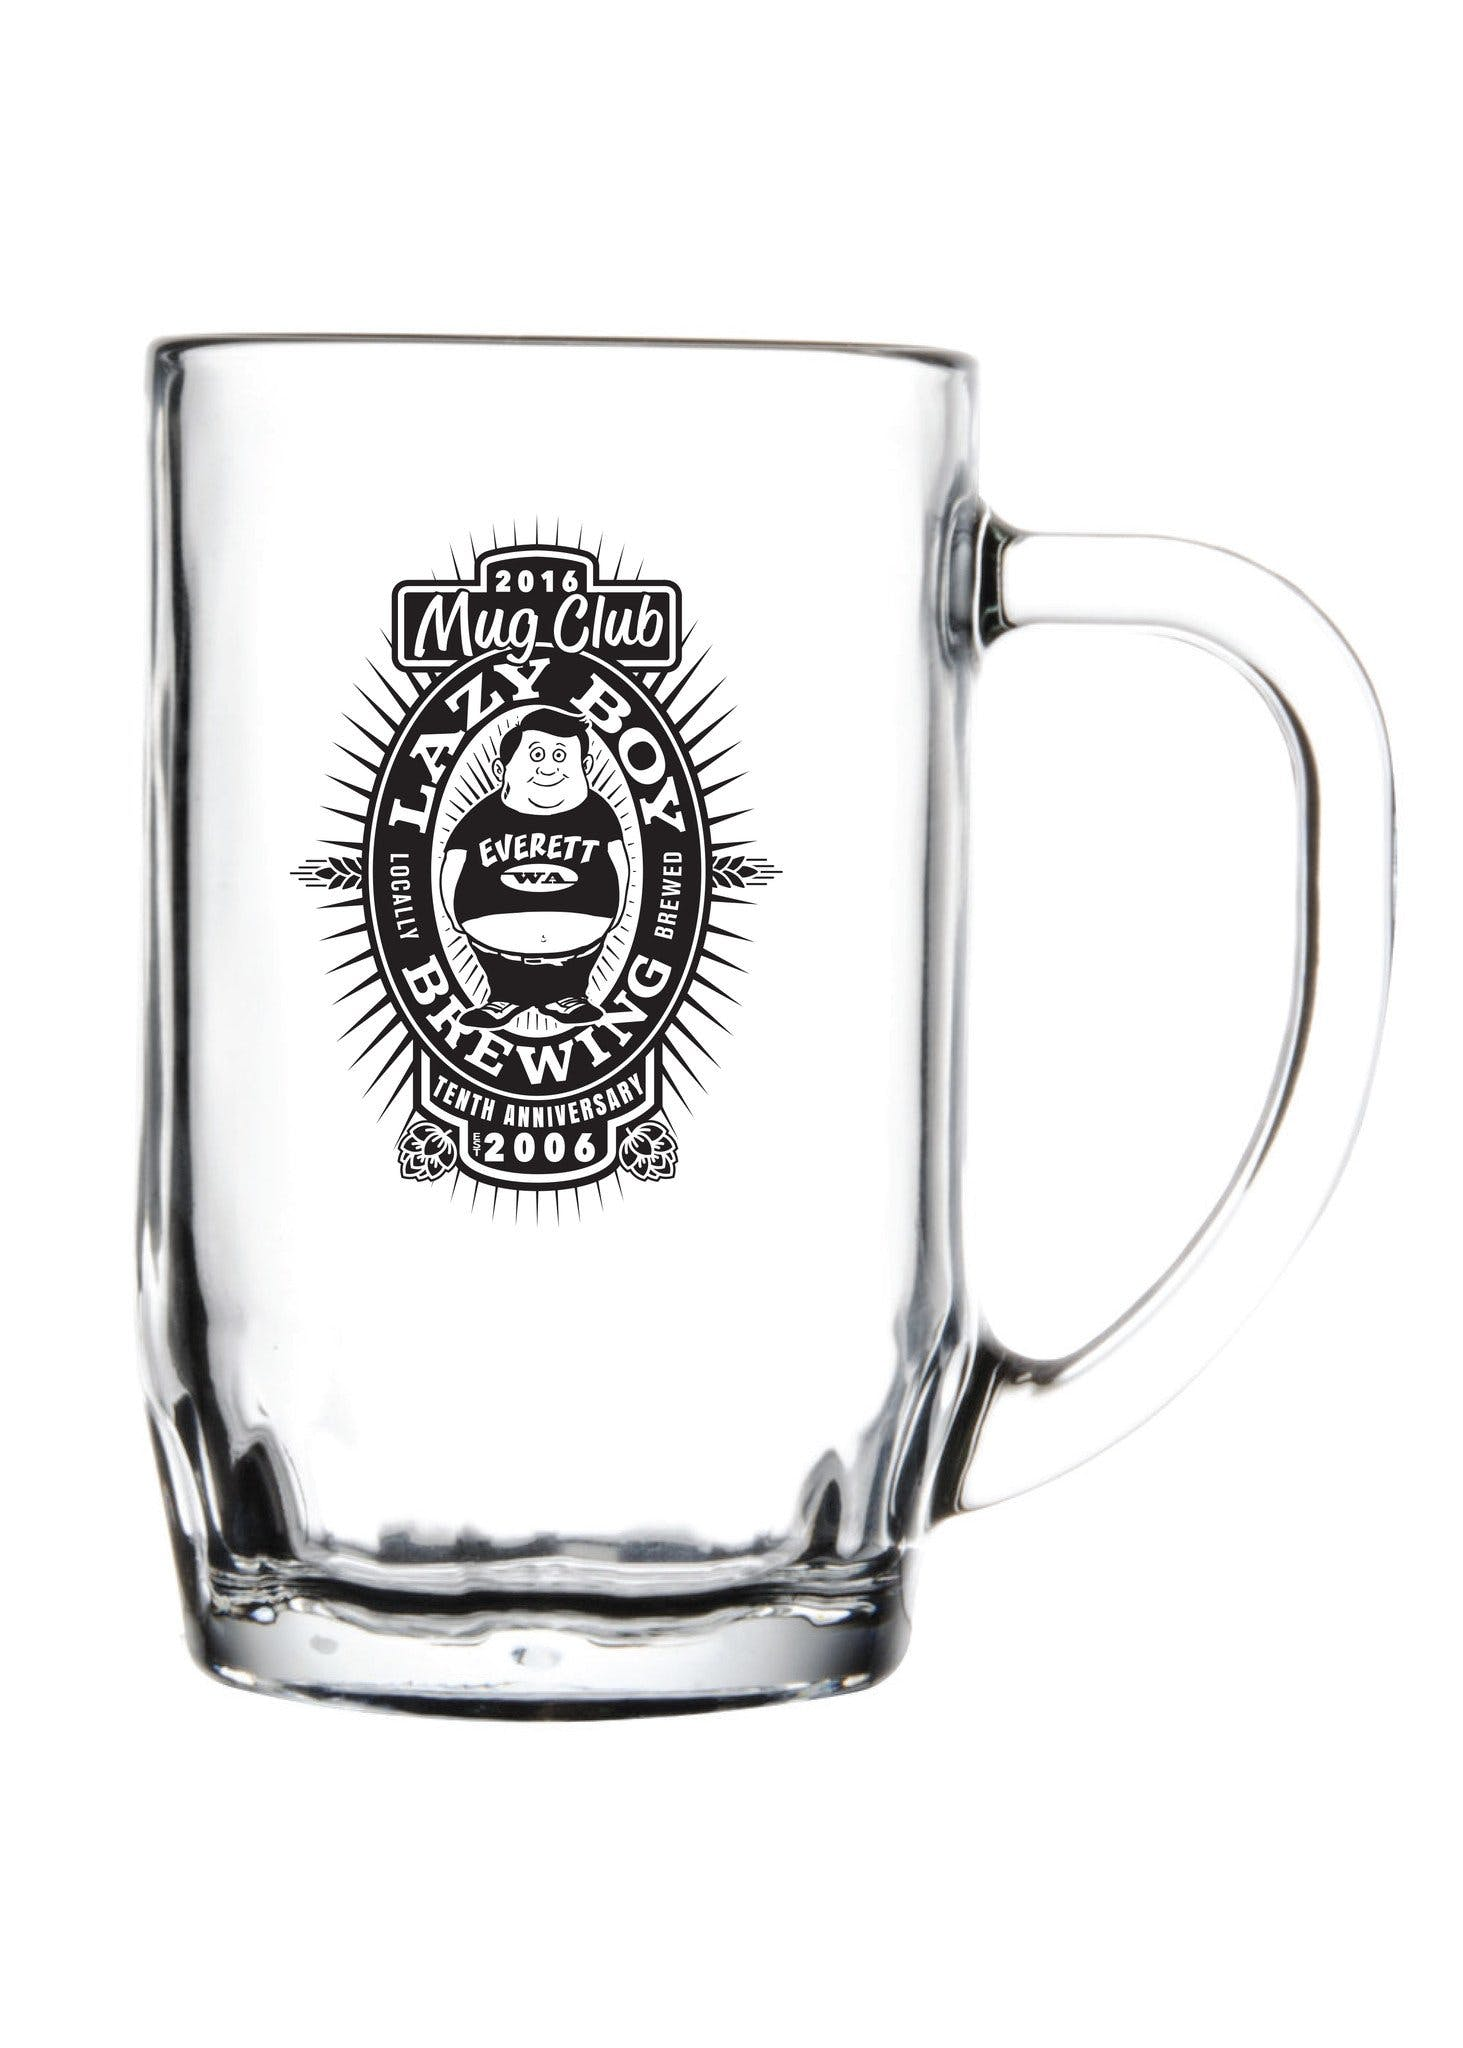 19.5 oz. Thumbprint Mug #316 - sold by Clearwater Gear